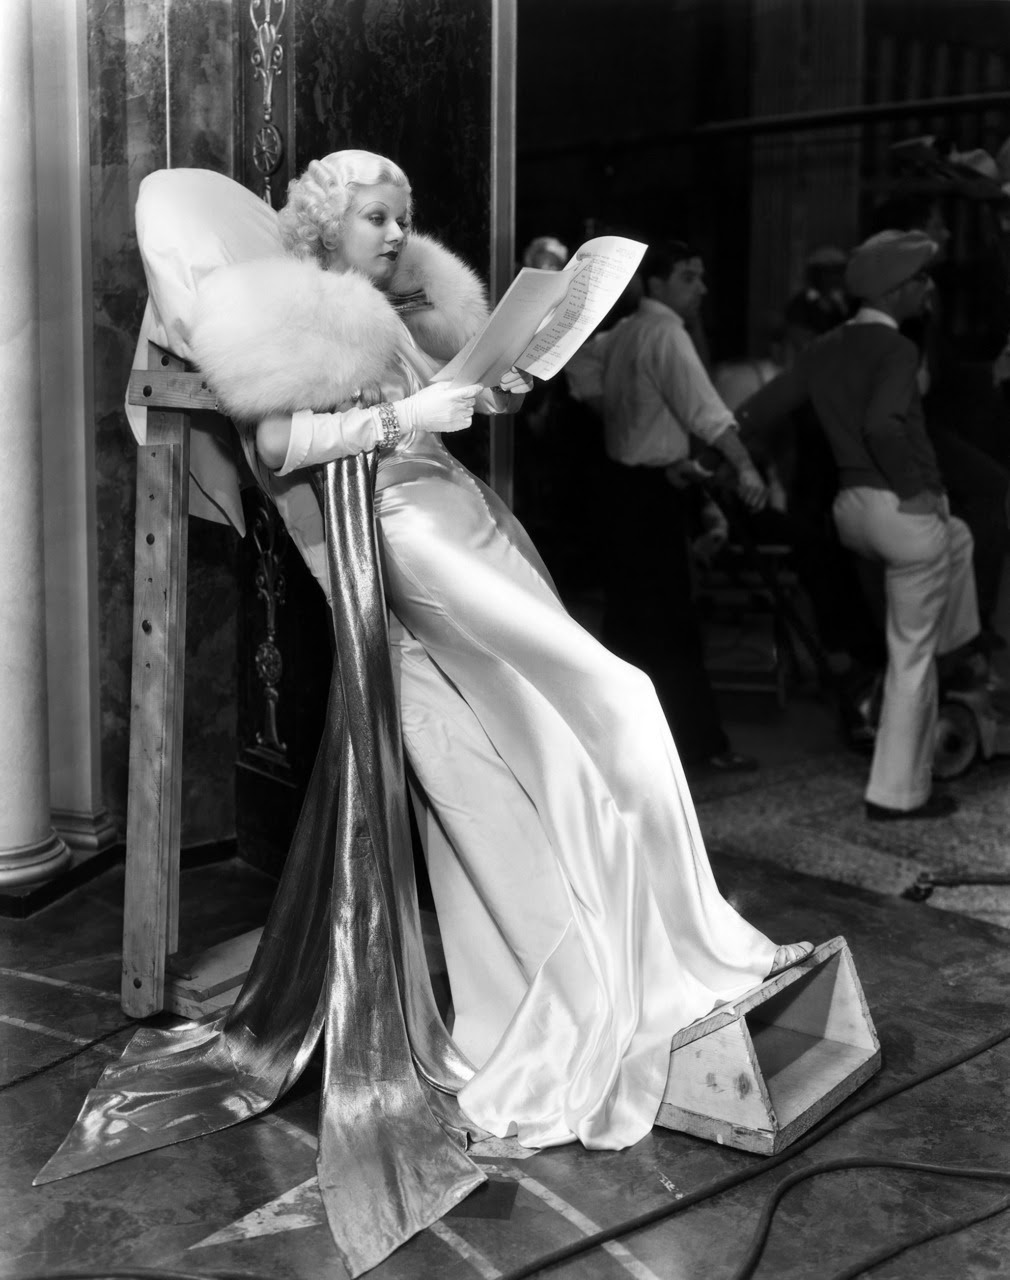 historiful:  Actress Jean Harlow (1911-1937), on the set of George Cukor's film, Dinner at Eight, 1933.